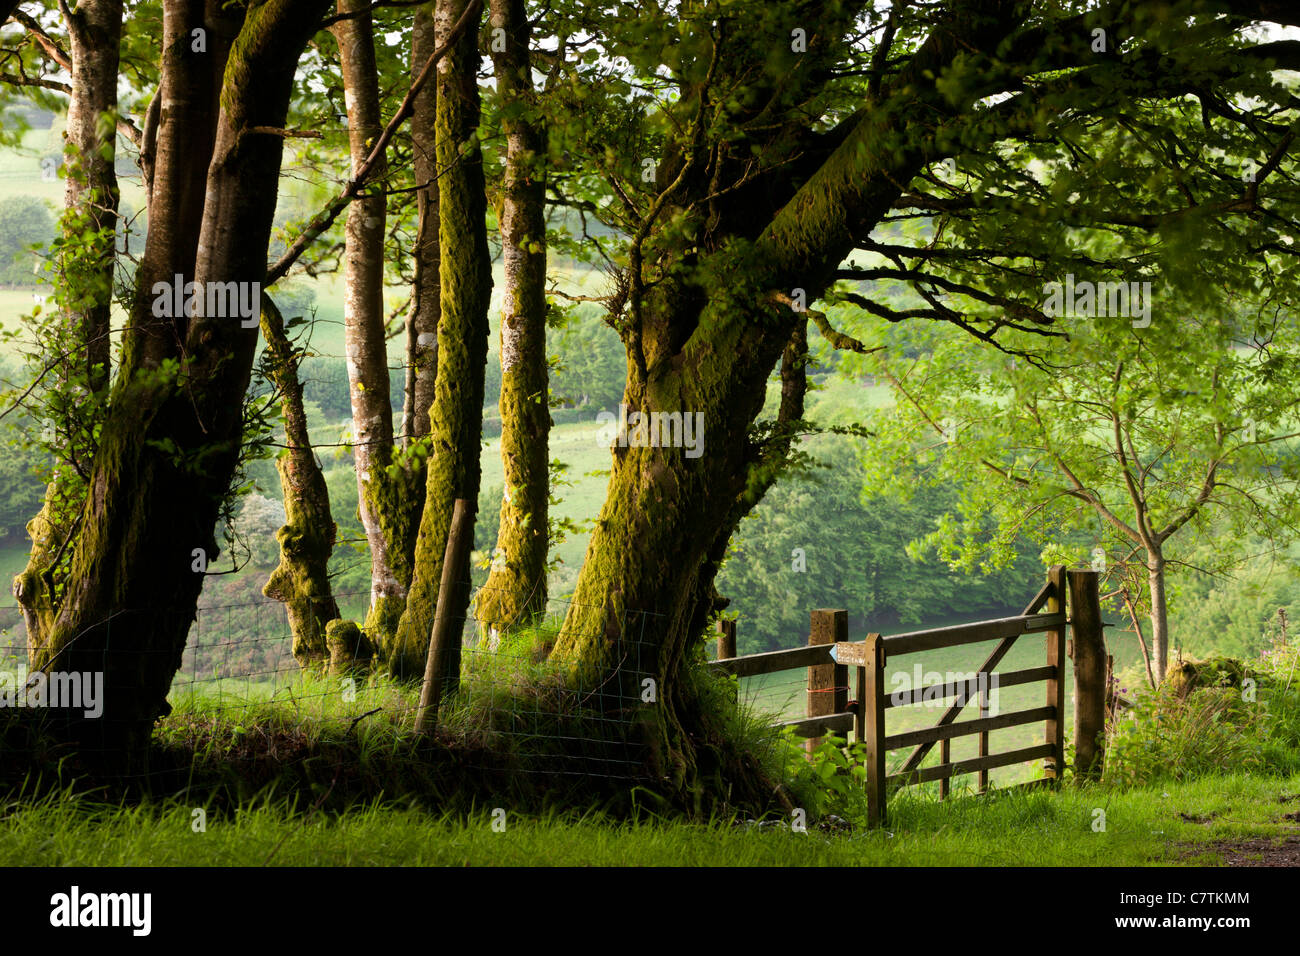 Public Bridleway through trees and countryside, Exmoor National Park, Somerset, England. Spring (May) 2011. - Stock Image